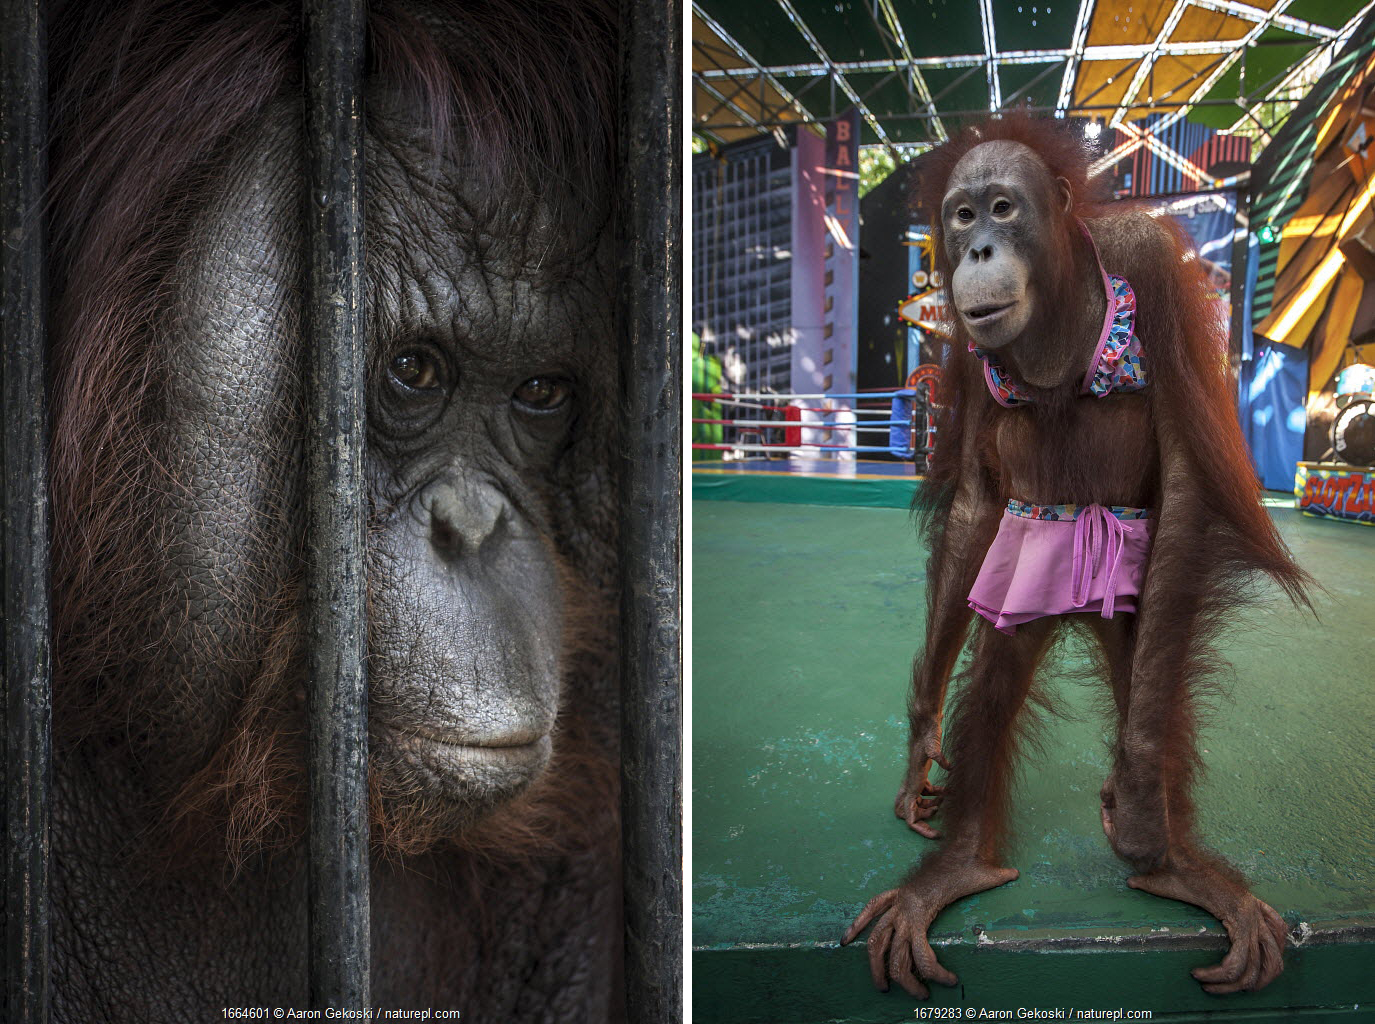 (LEFT) Captive orangutans (Pongo sp.) kept behind bars, used in shows for the entertainment of tourists. Safari World, near Bangkok, Thailand. March 2018. (RIGHT) Skinny Orangutan (Pongo sp.) dressed up and forced to perform in a boxing show for the entertainment of tourists. Safari World near Bangkok, Thailand.